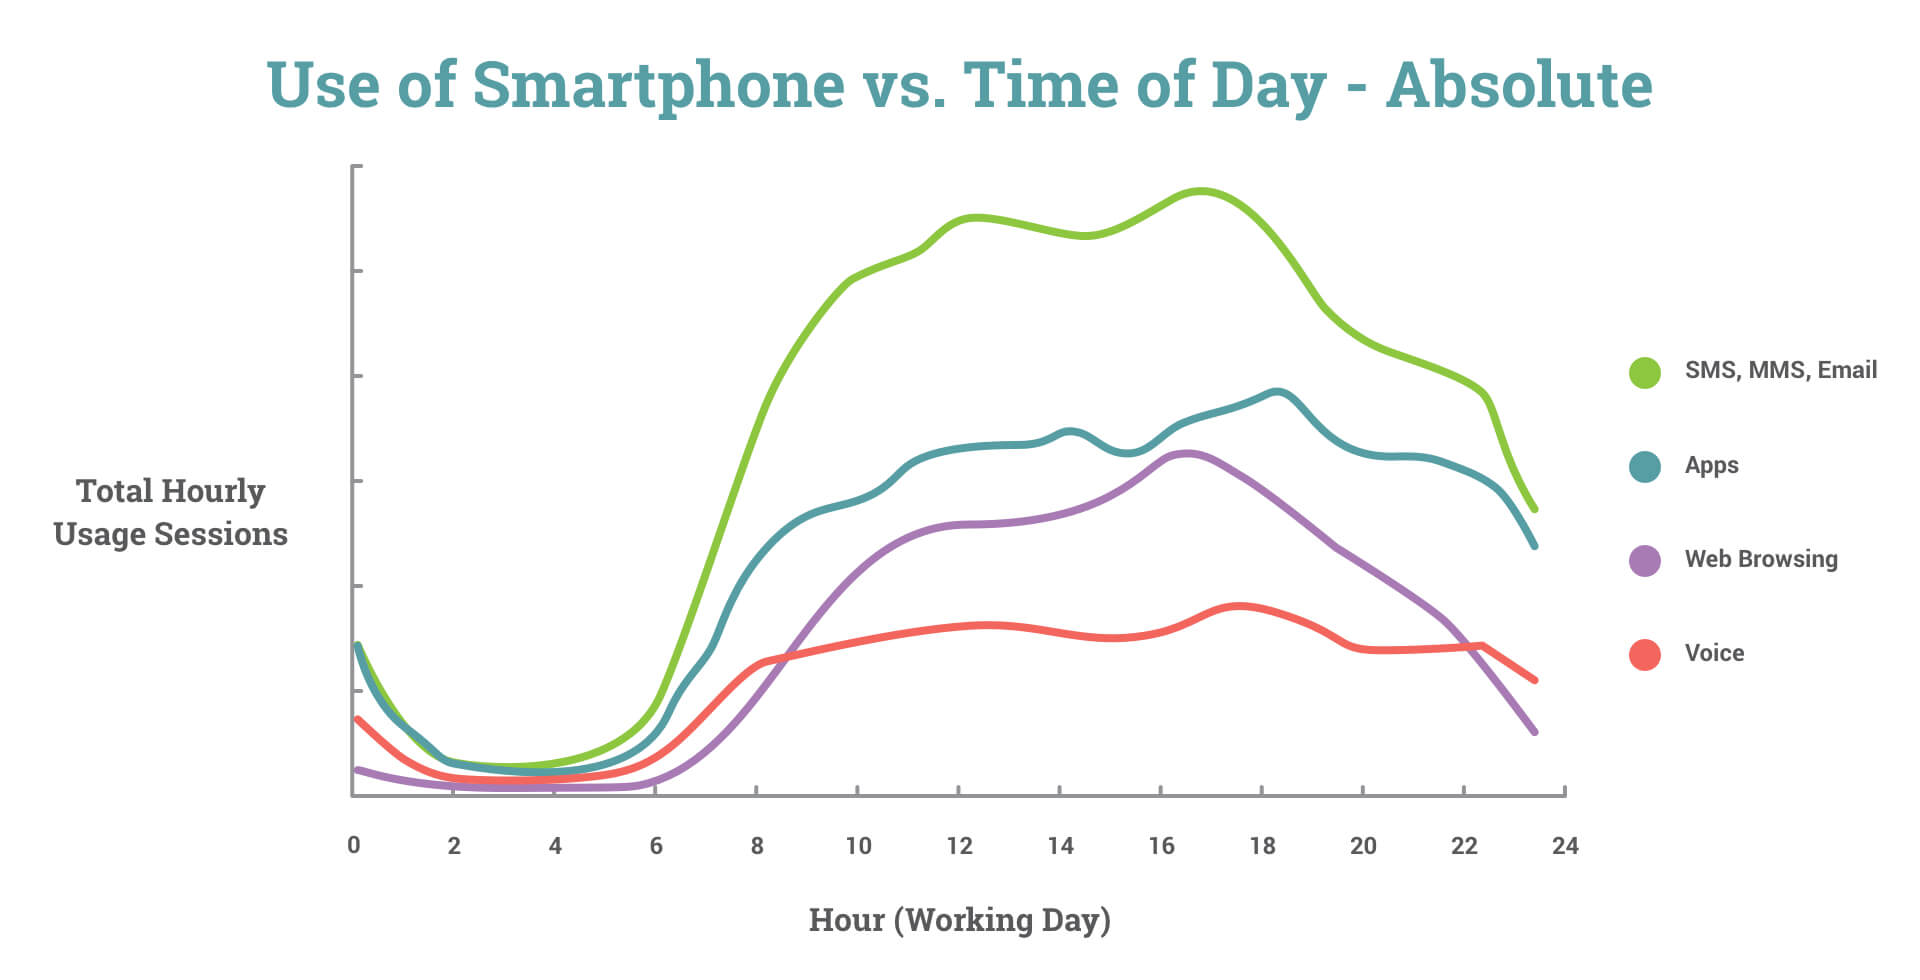 Use of Smartphone vs. Time of Day